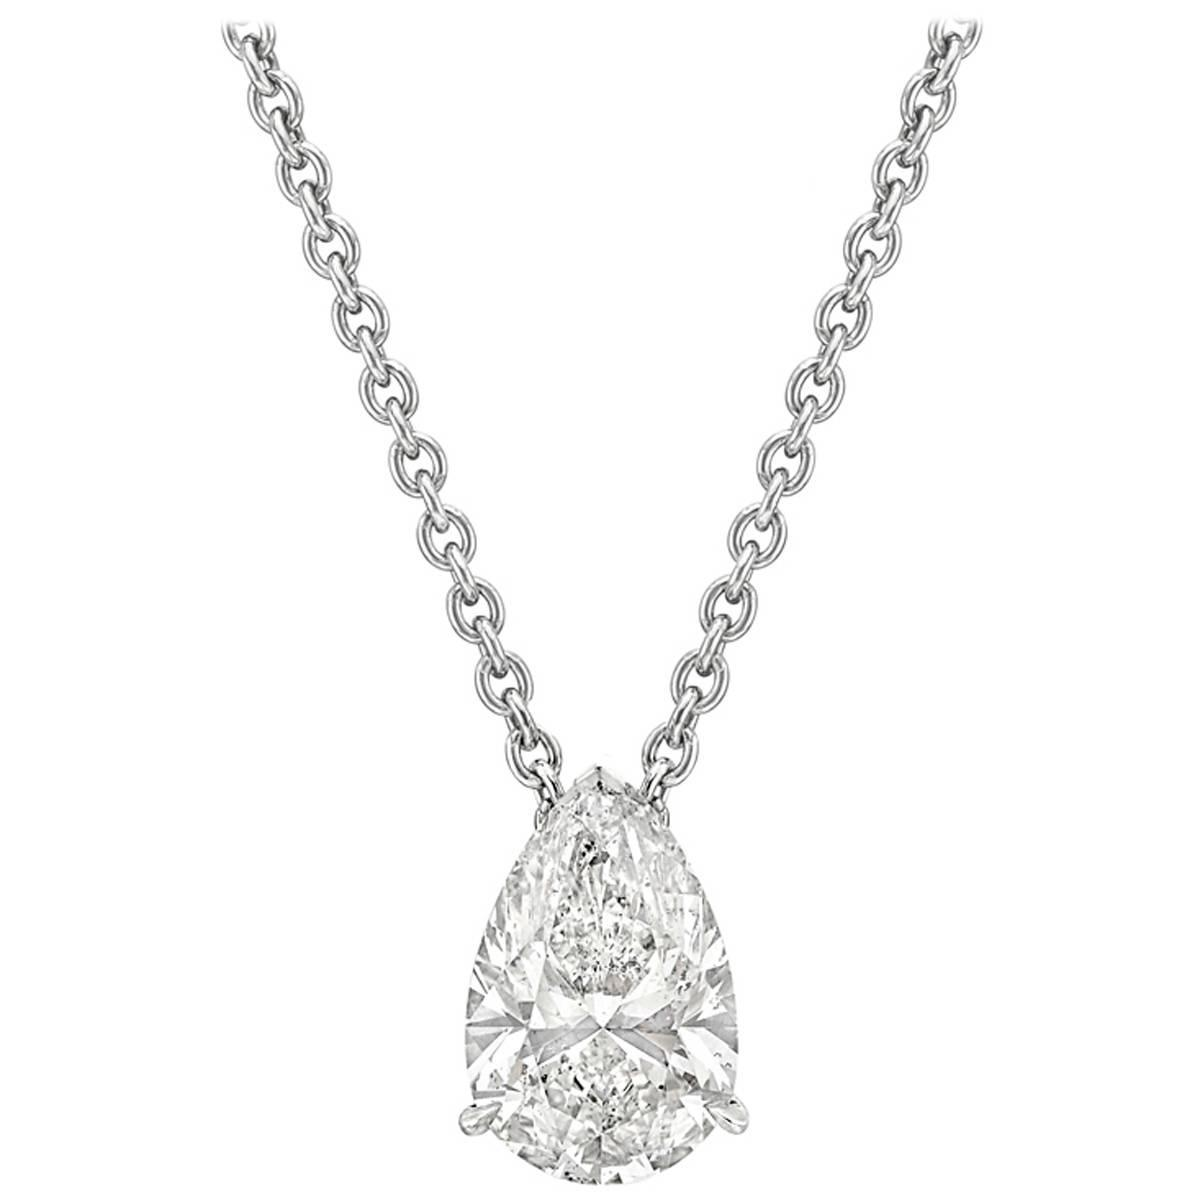 luxury the silver include heart jewelrypalace solid pear jewelry chain shaped not cut sterling pendant wholesale emerald necklace product created